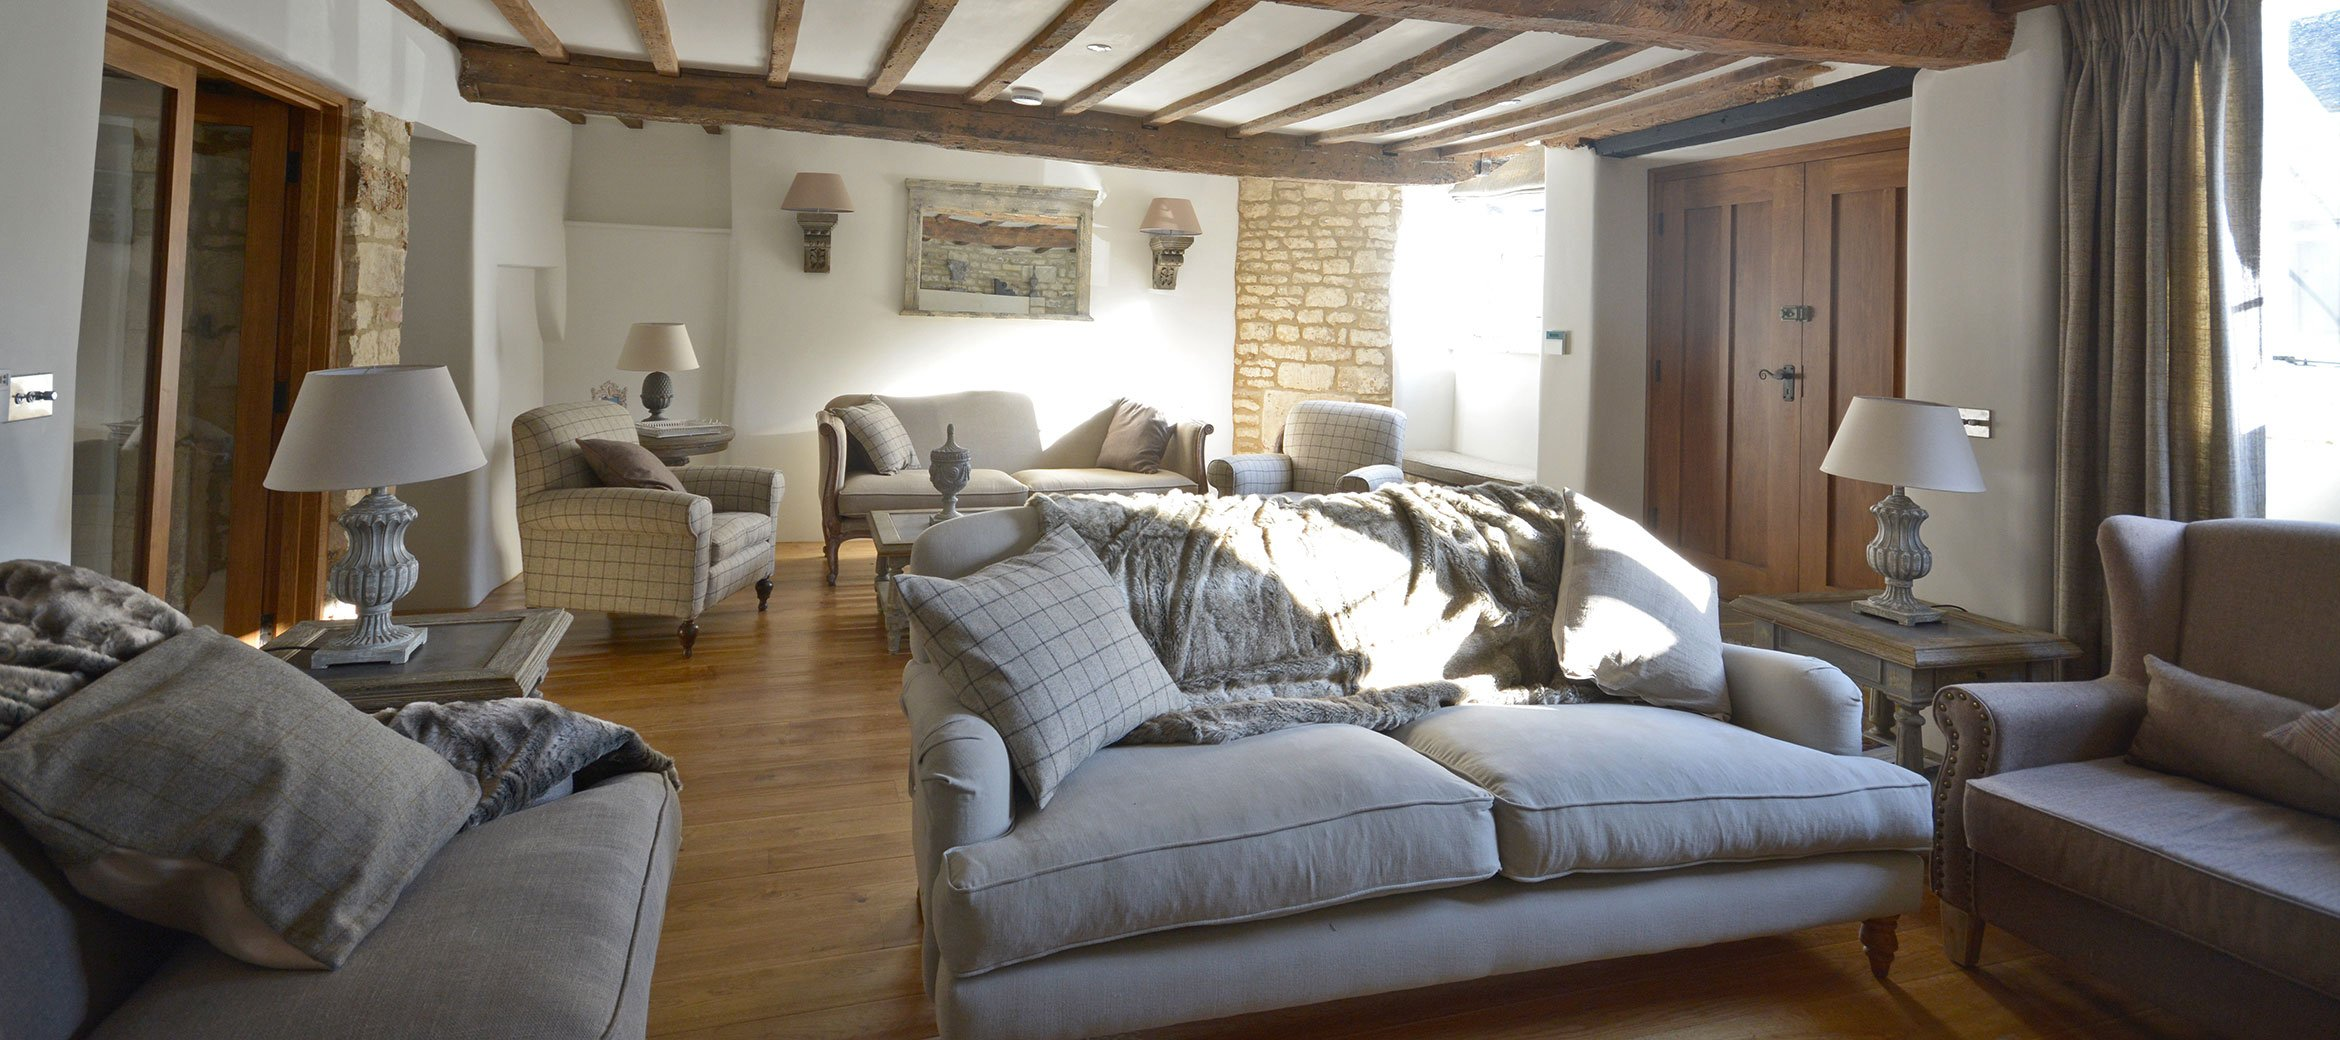 burford-cotswold-cottage-drawing-room